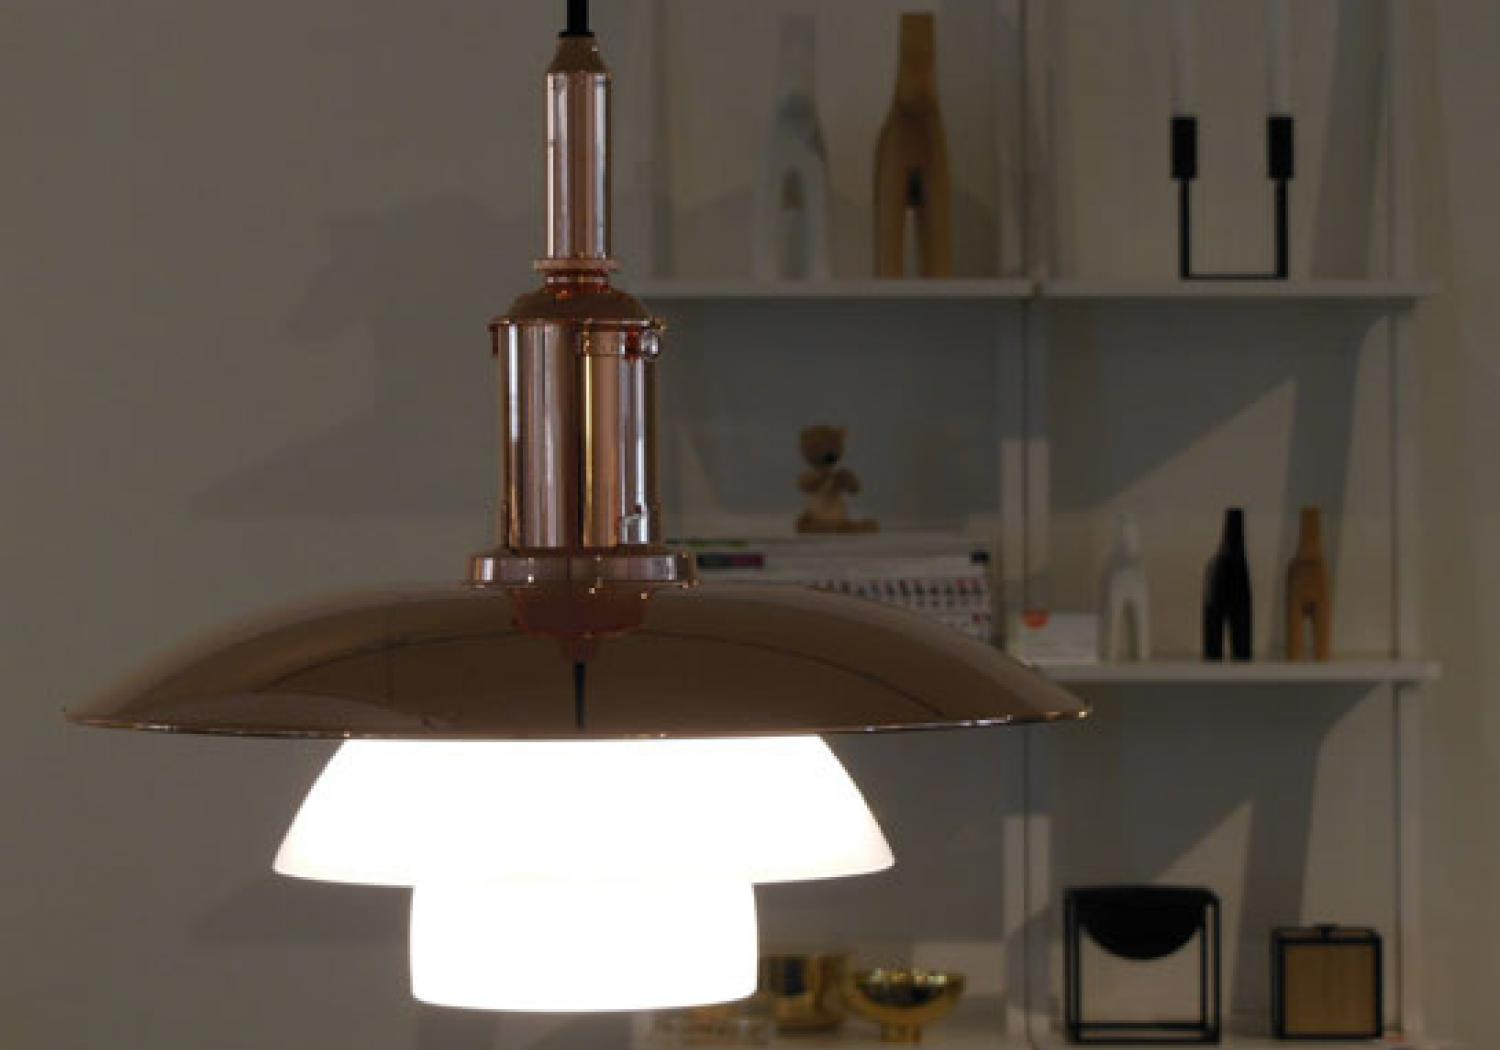 Limited edition PH 3 1/2 - 3 copper by Poul Henningsen from Louis Poulsen